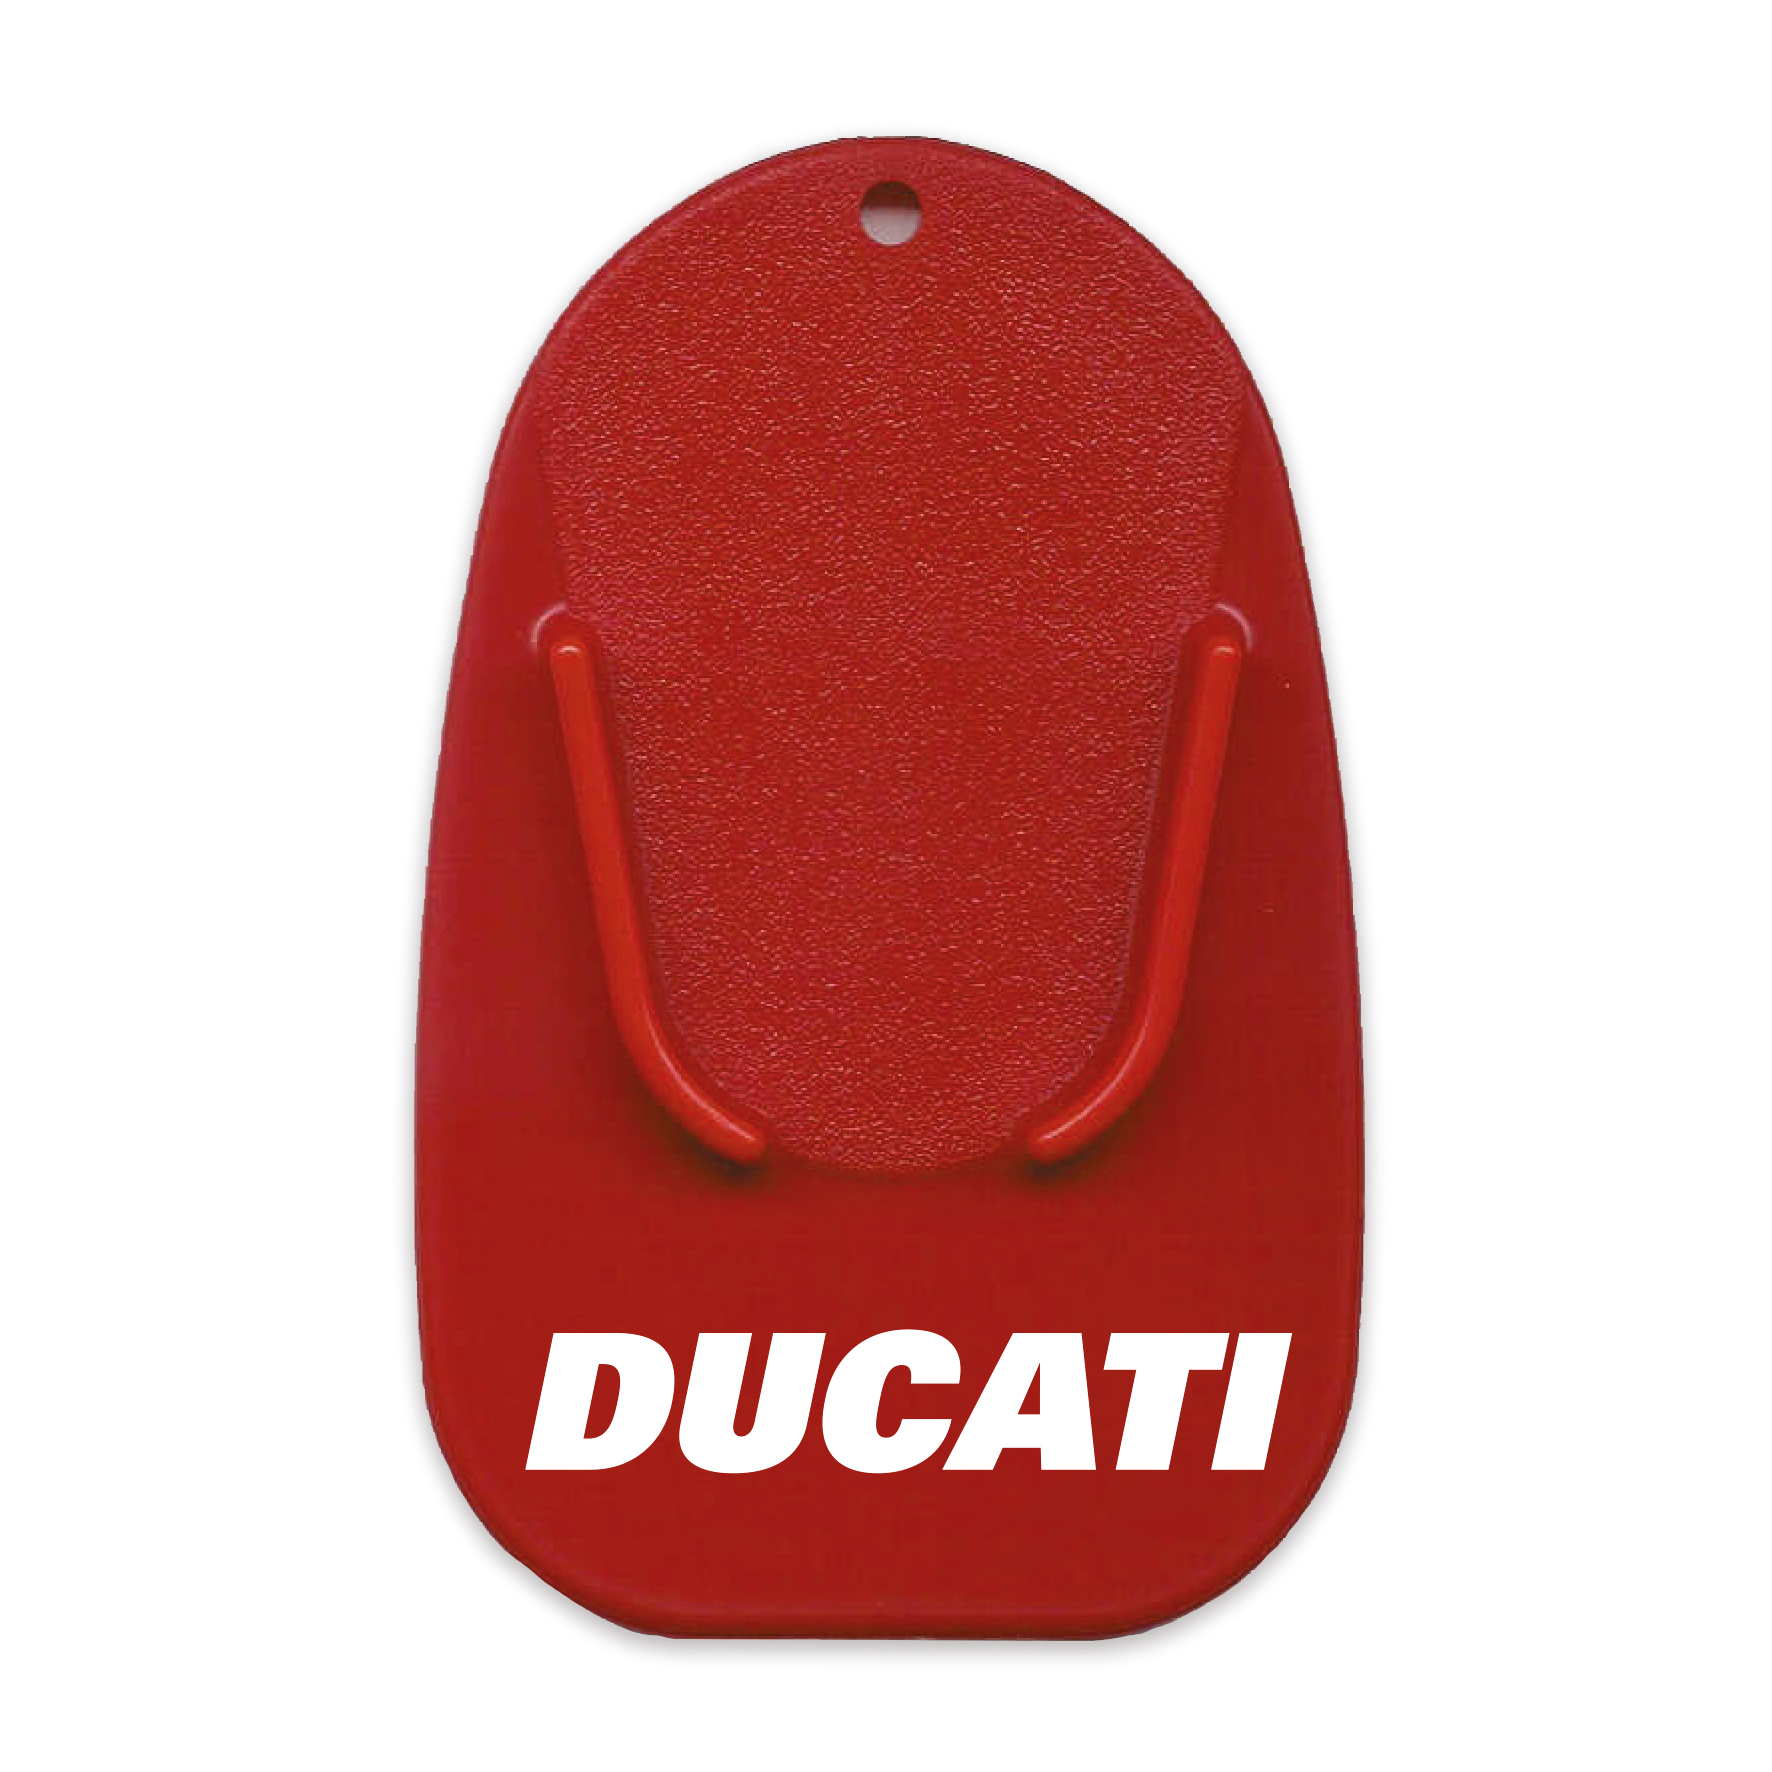 Universal base plate for stand (Ducati).